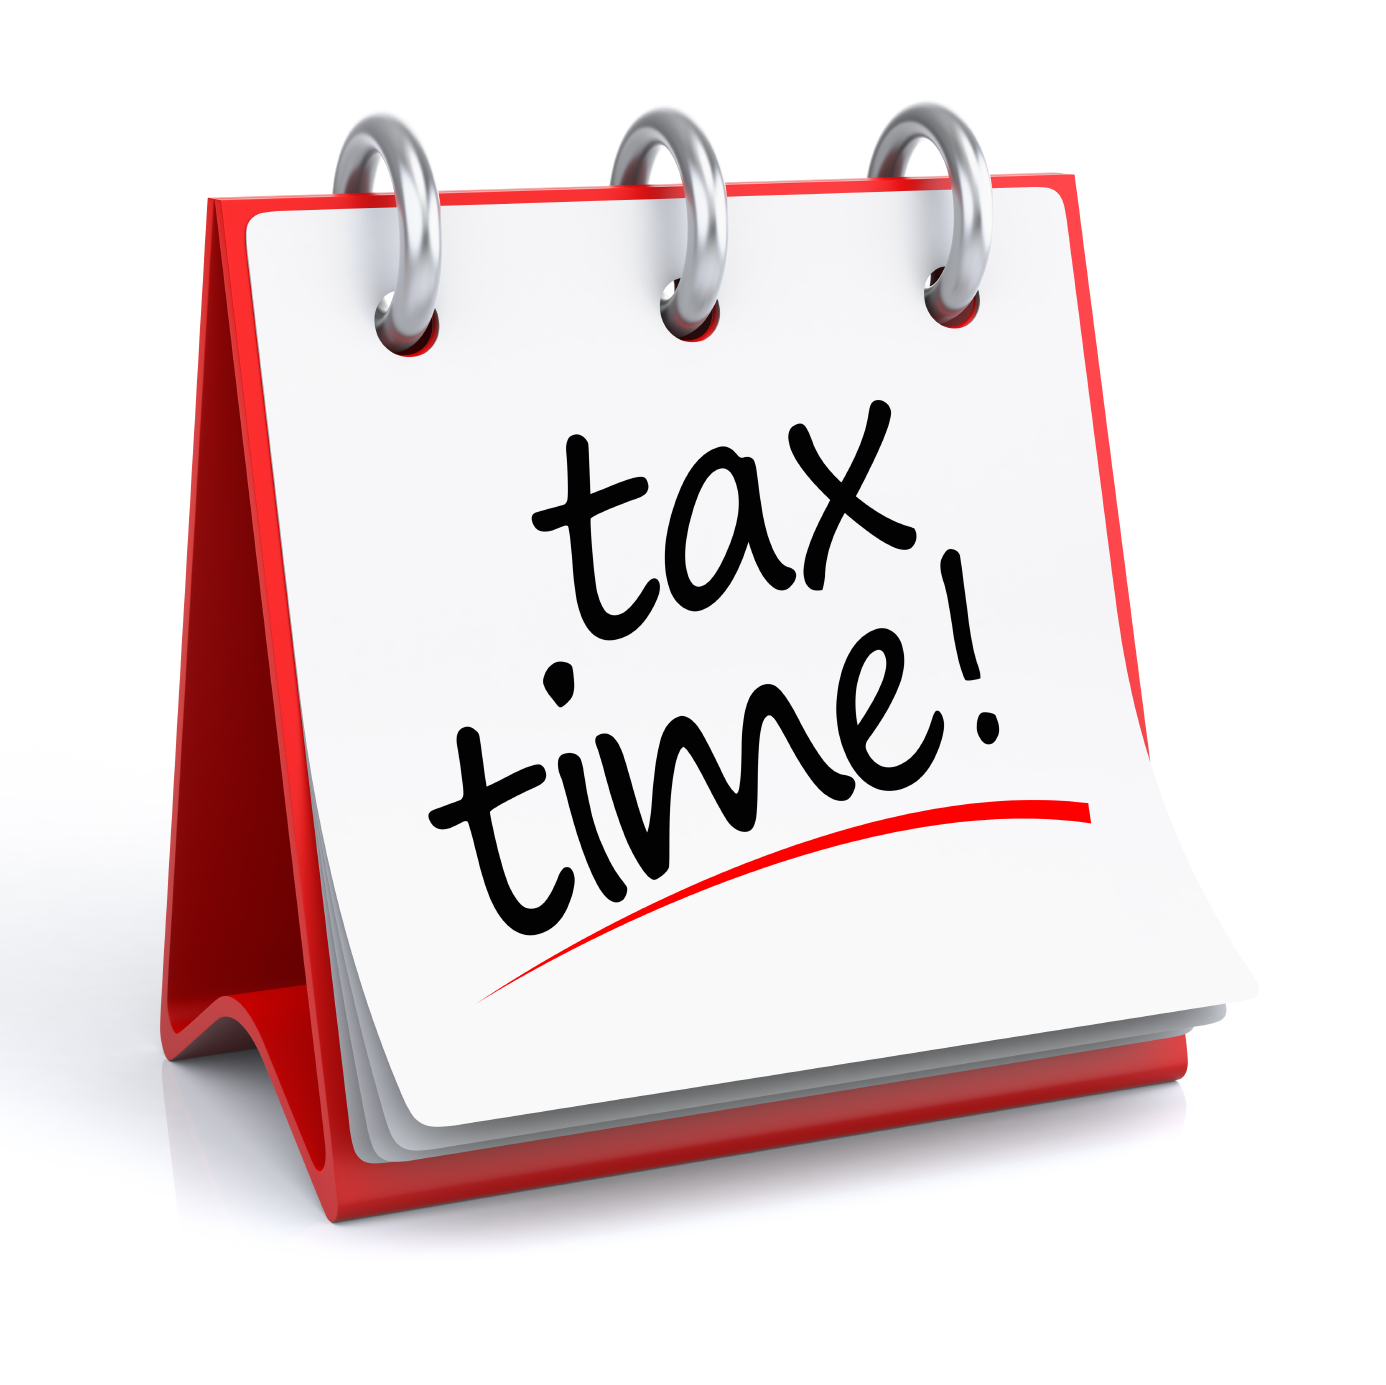 Bosnian ITA collects 289million BAM more inindirect tax revenues than last year